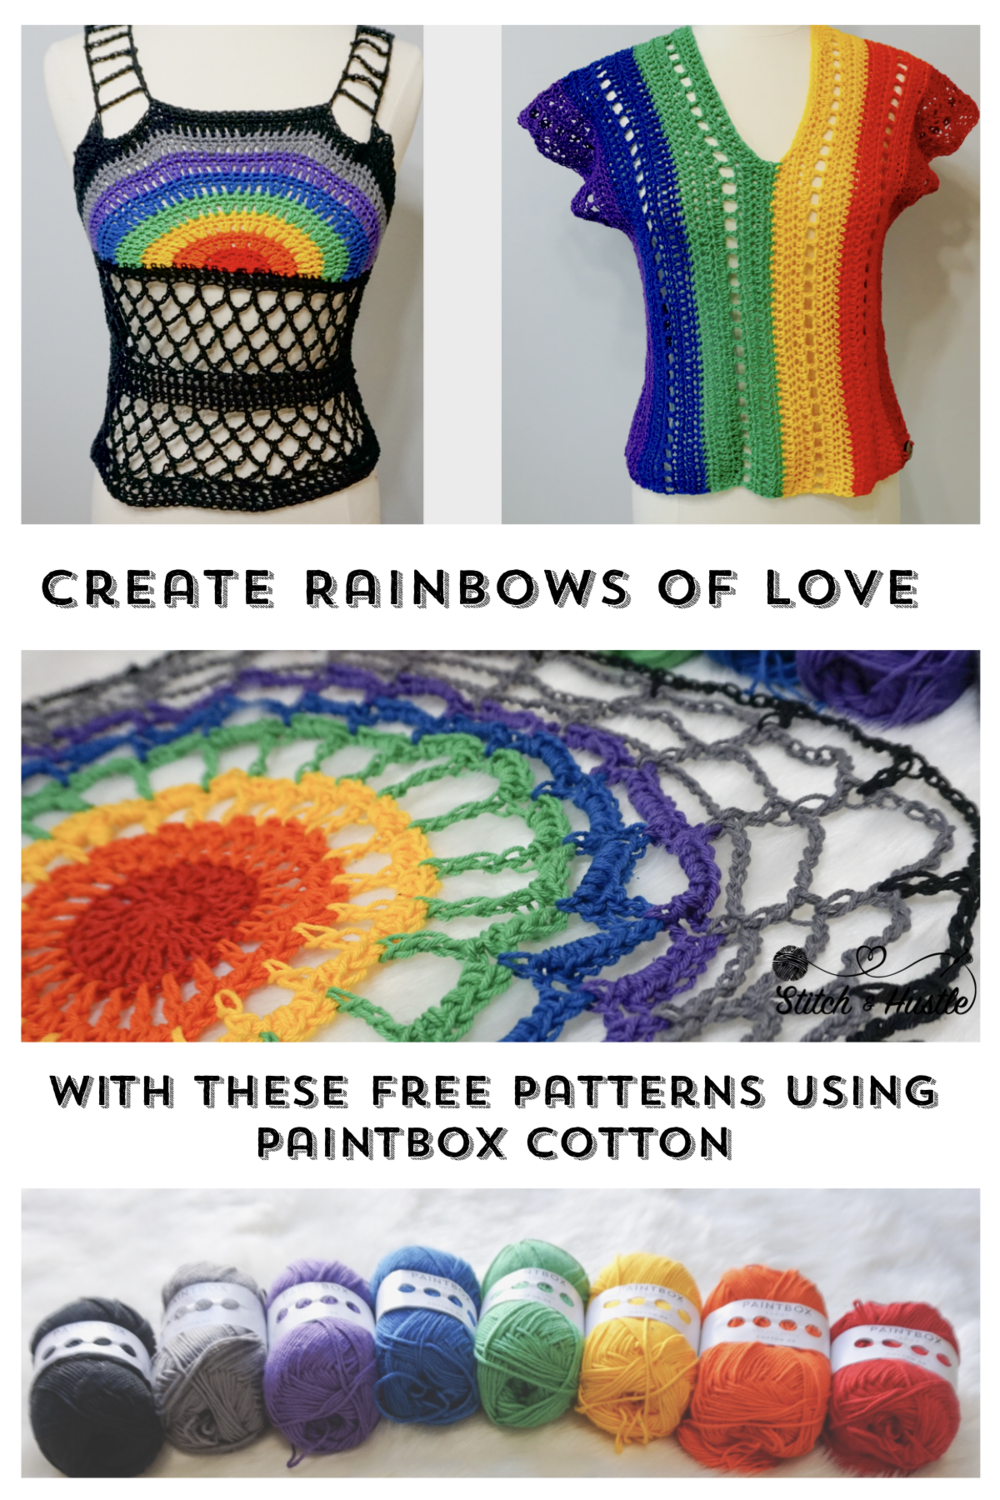 rainbow-crochet-summer-festival-top-free-patterns.jpeg